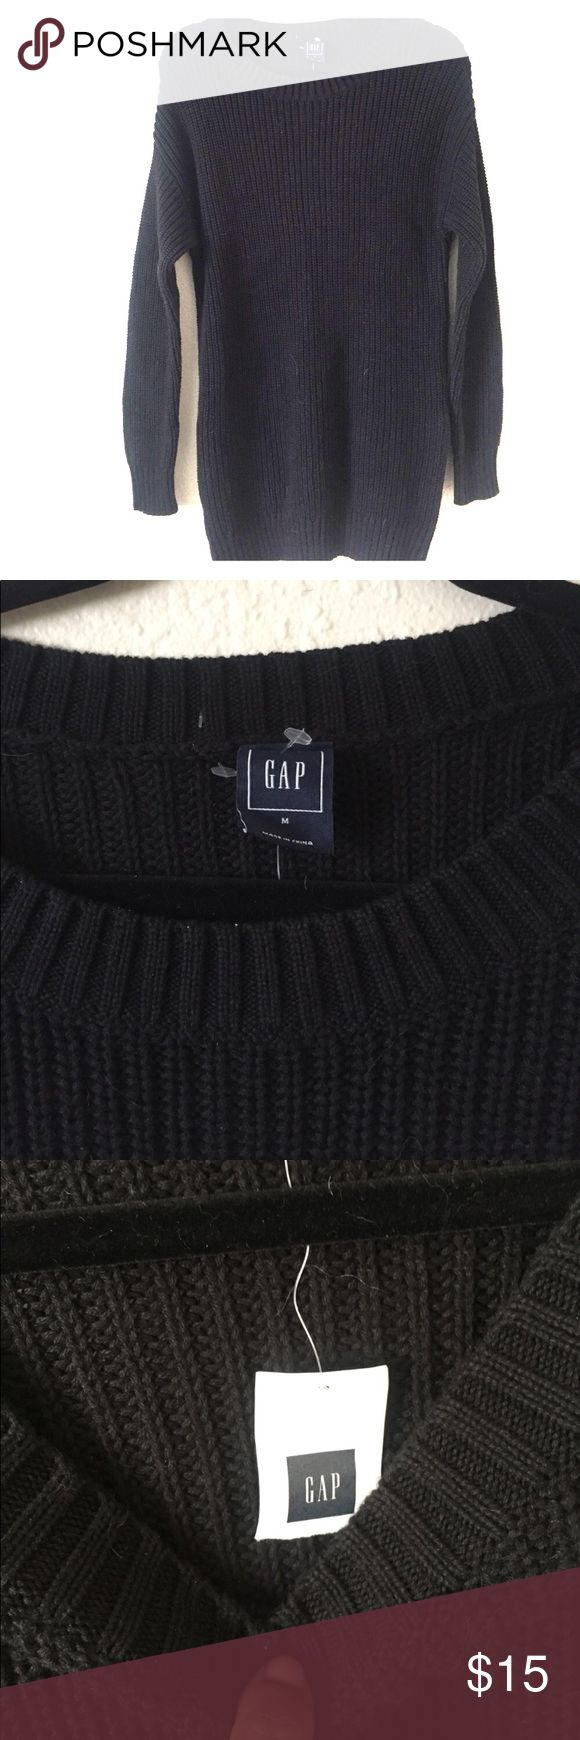 BNWT GAP Sweater Dress Oversized Zipper Sz M Brand new, fits true to size. Zippers down the side.  ***Pets reside in this home so a few hairs may travel with the garment. 🏡 🐶 🐱 GAP Sweaters